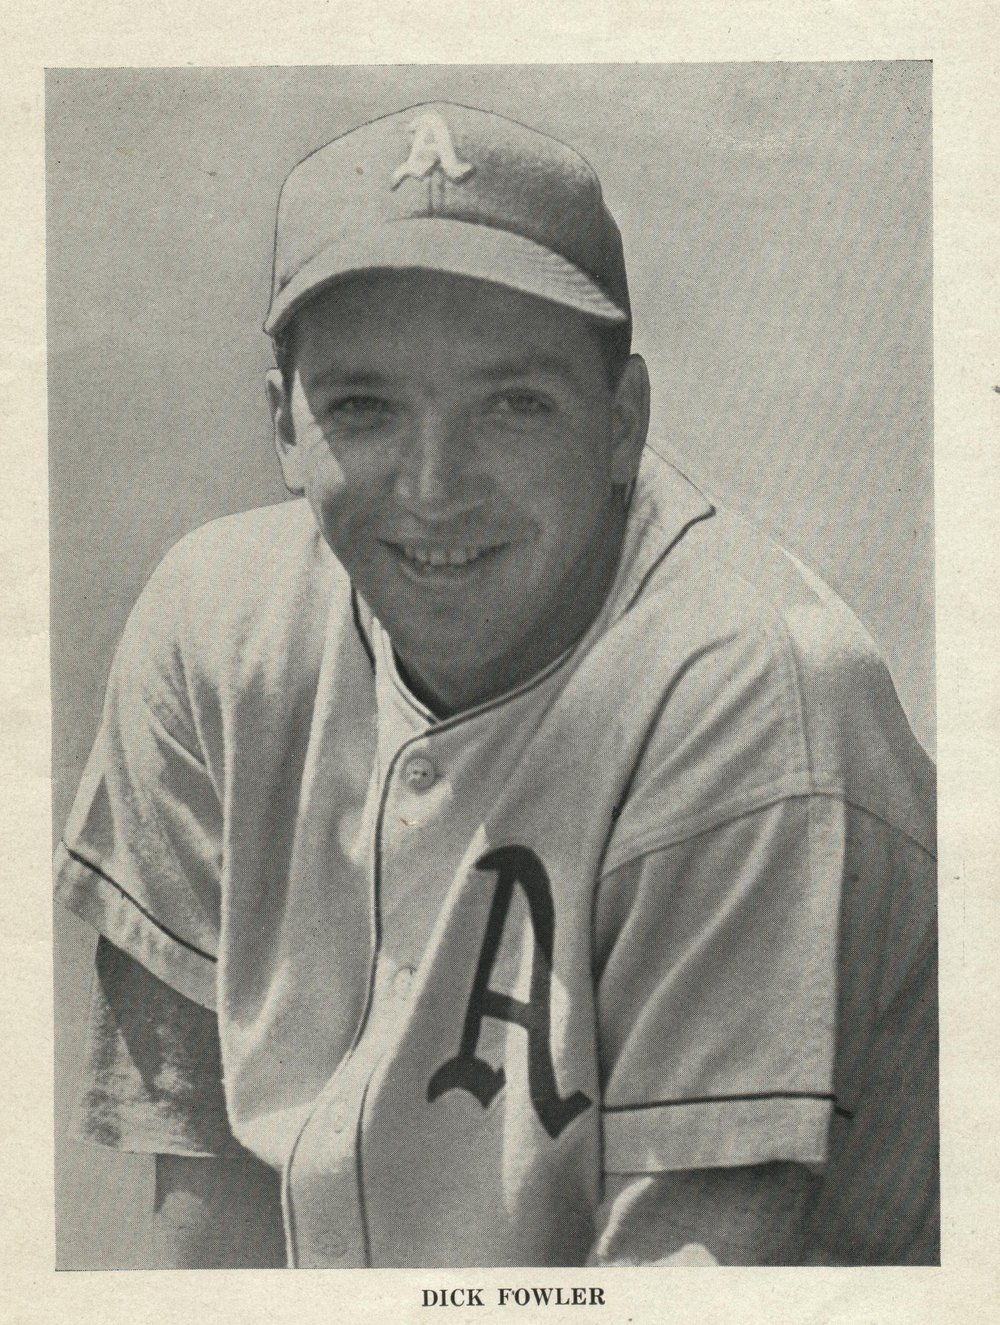 Dick Fowler (Toronto, Ont.) became the first Canadian to throw a no-hitter in the major leagues on September 9, 1945. Photo Credit: Canadian Baseball Hall of Fame